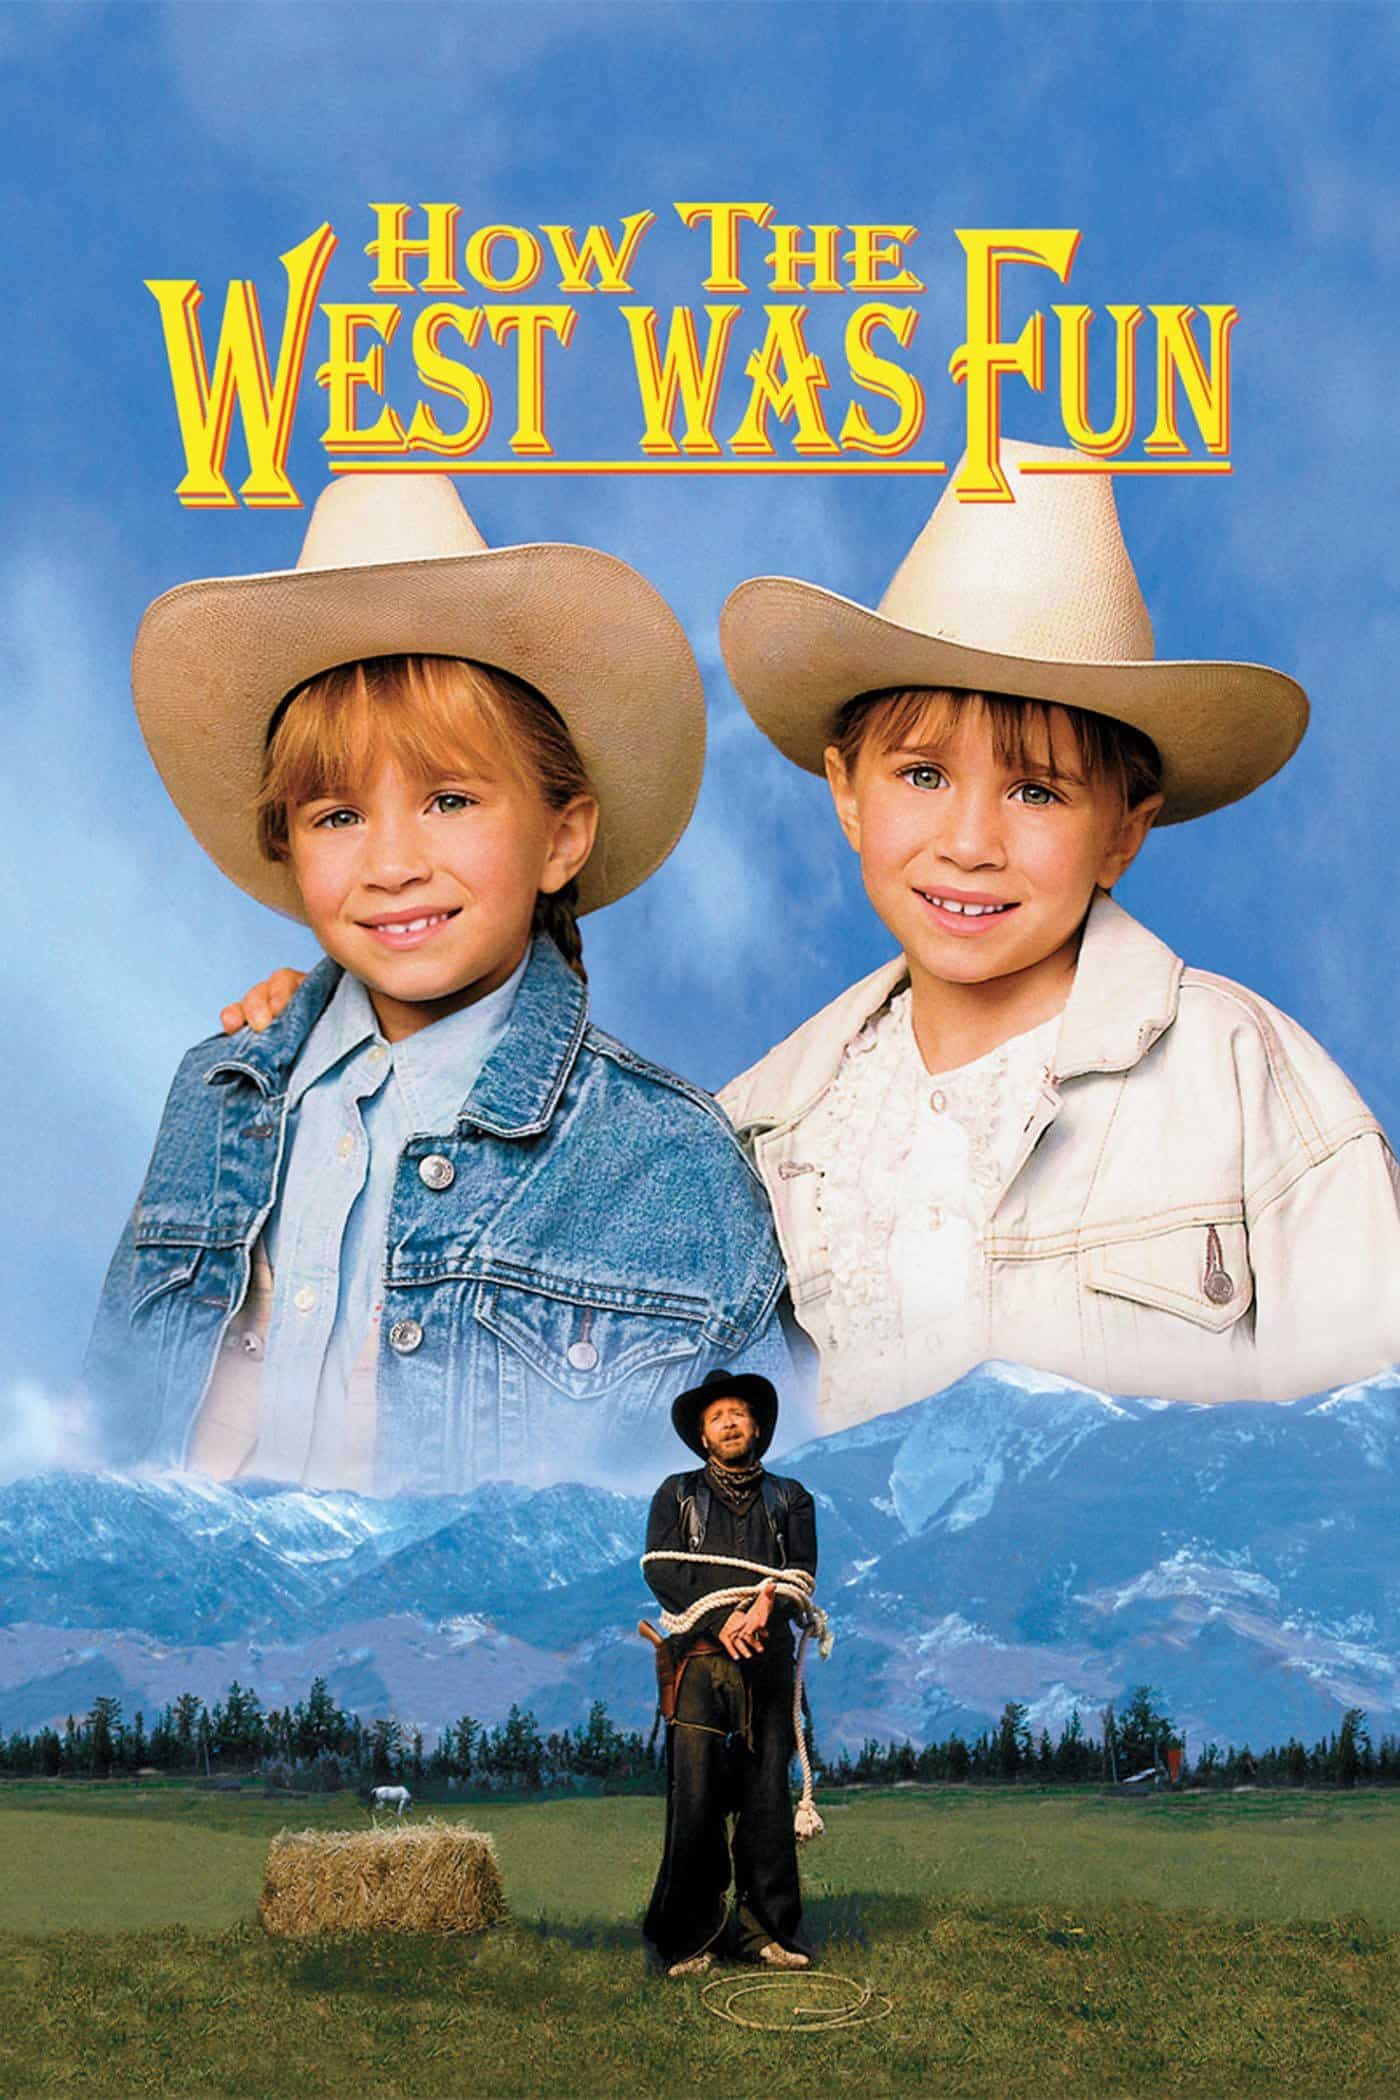 How the West Was Fun, 1994